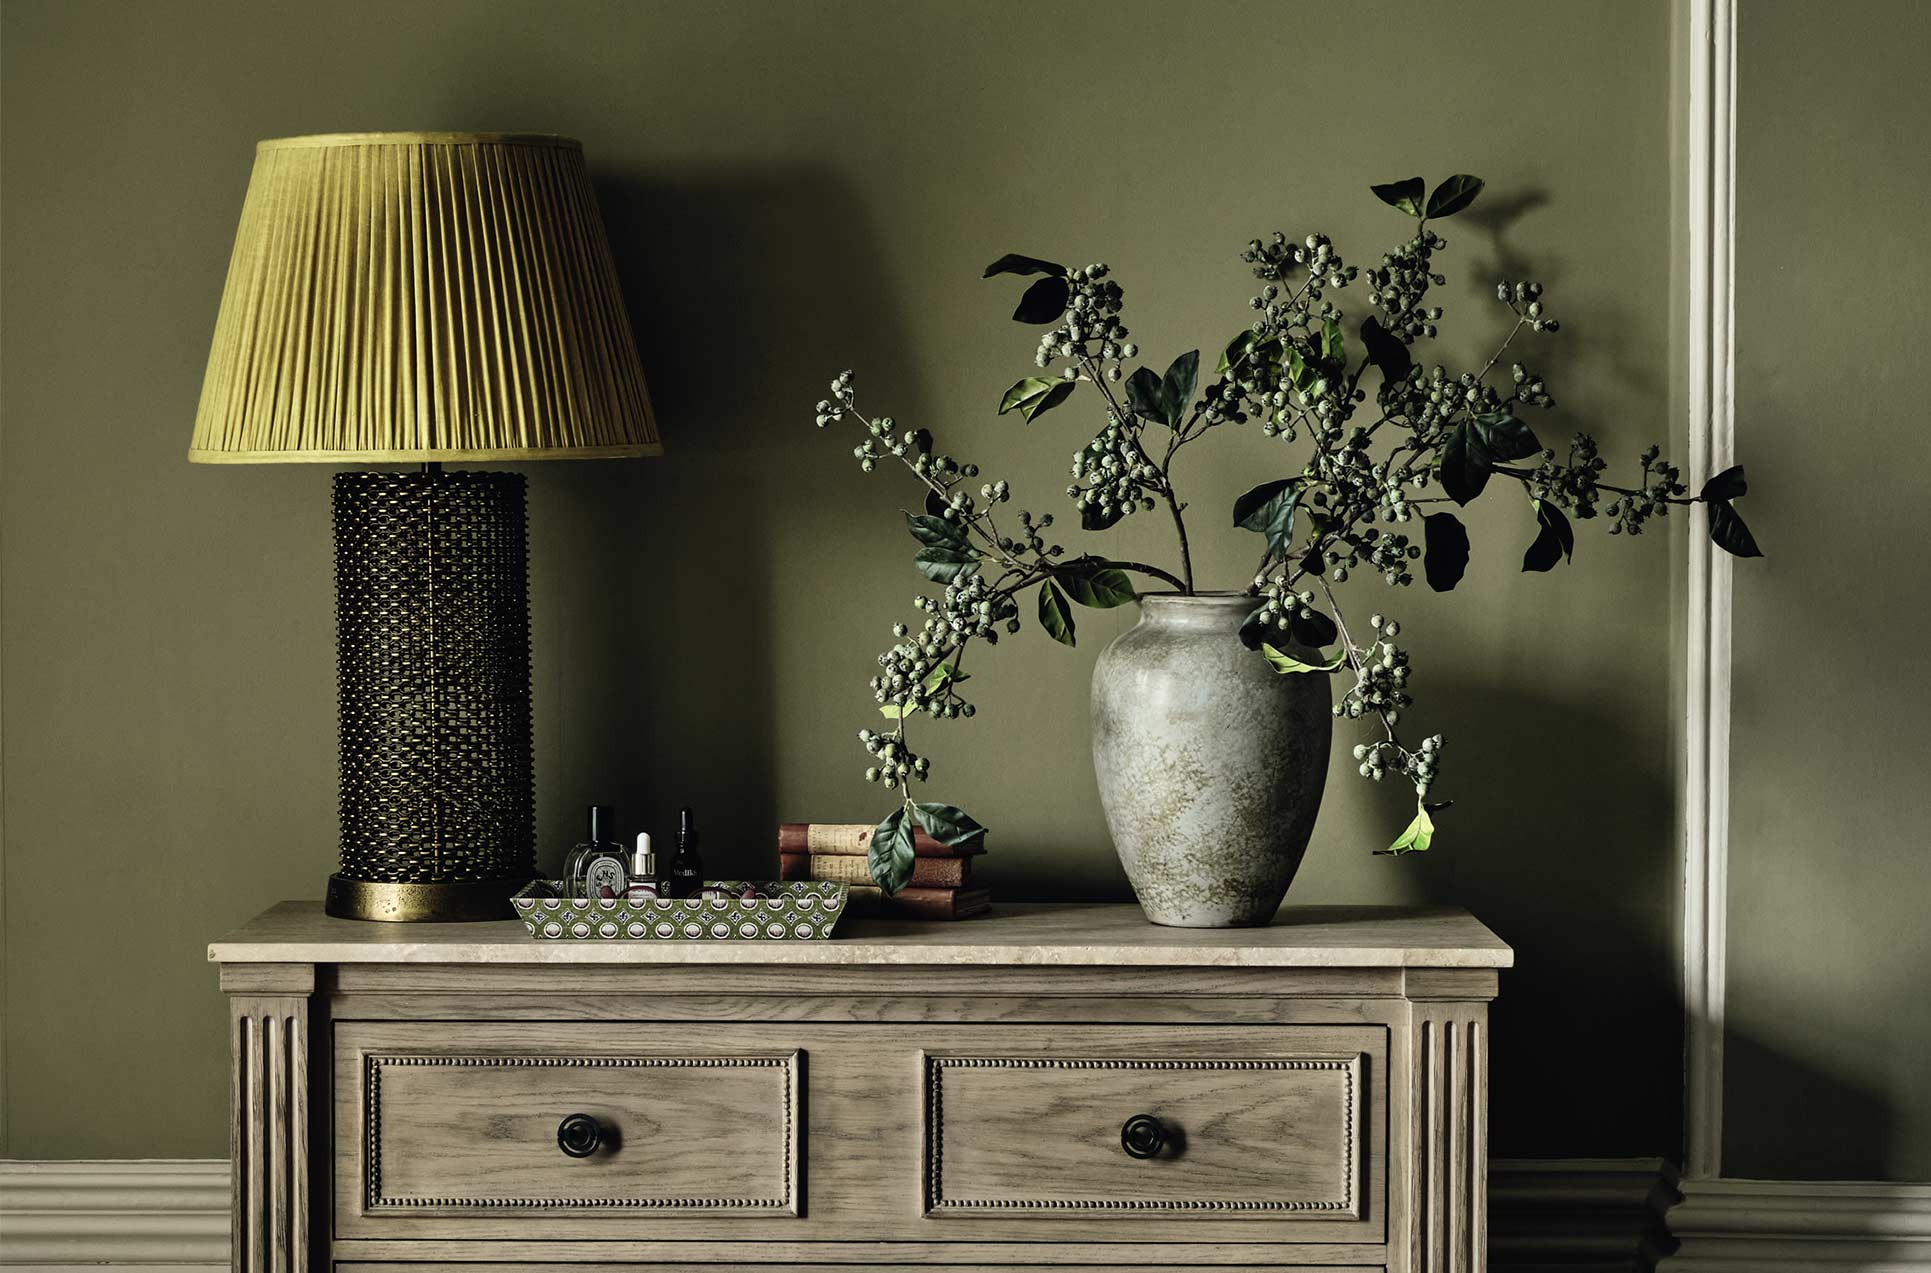 A glass table lamp with a yellow lampshade, sat on a wooden chest of drawers